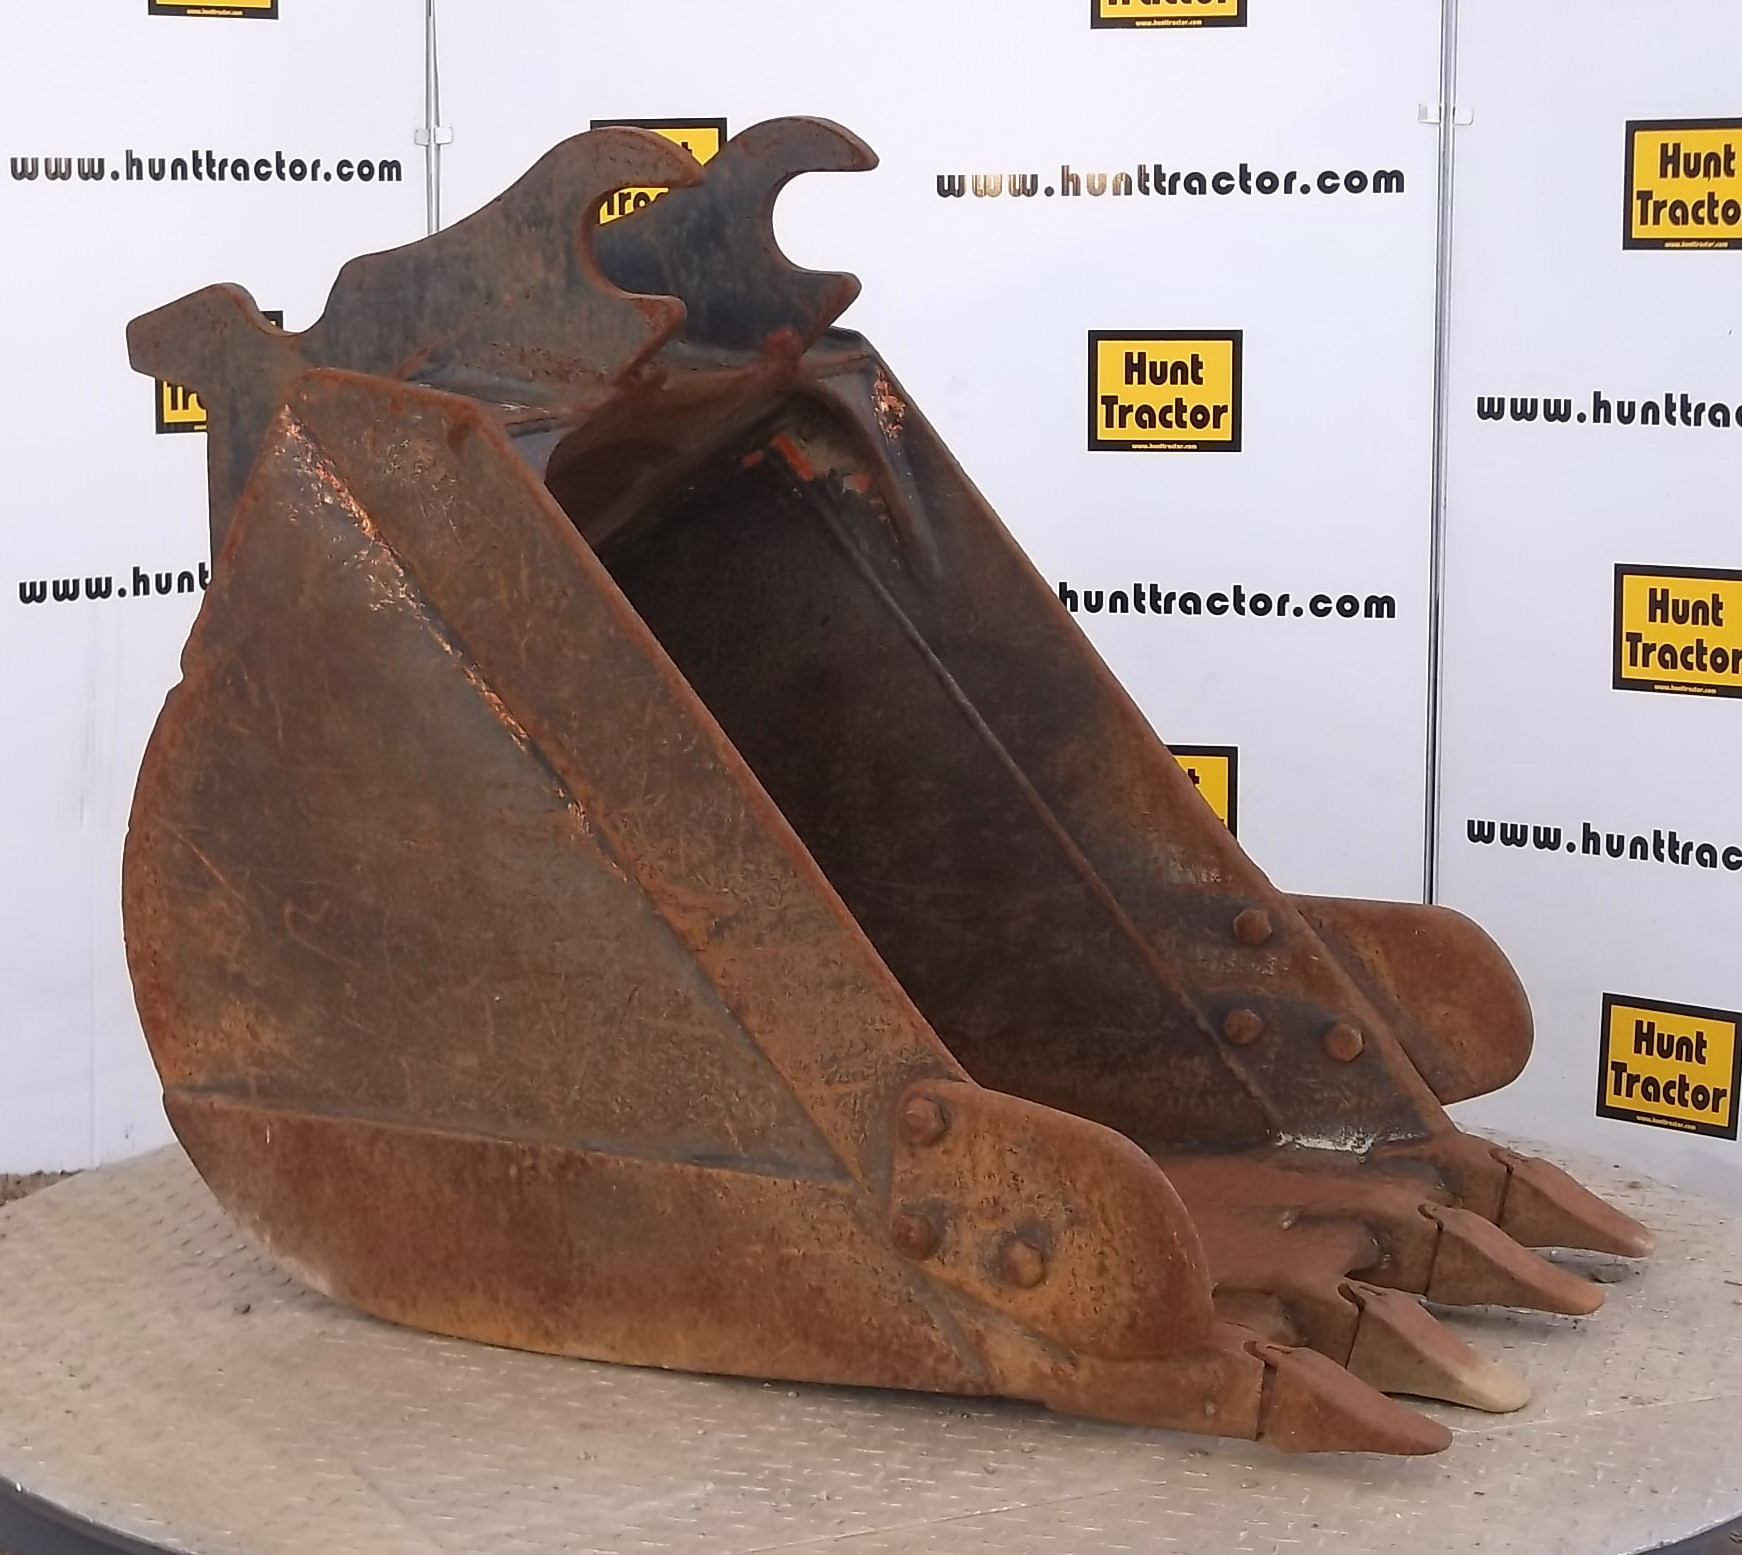 42199-26in Excavator Bucket with Wedge Lugging-1